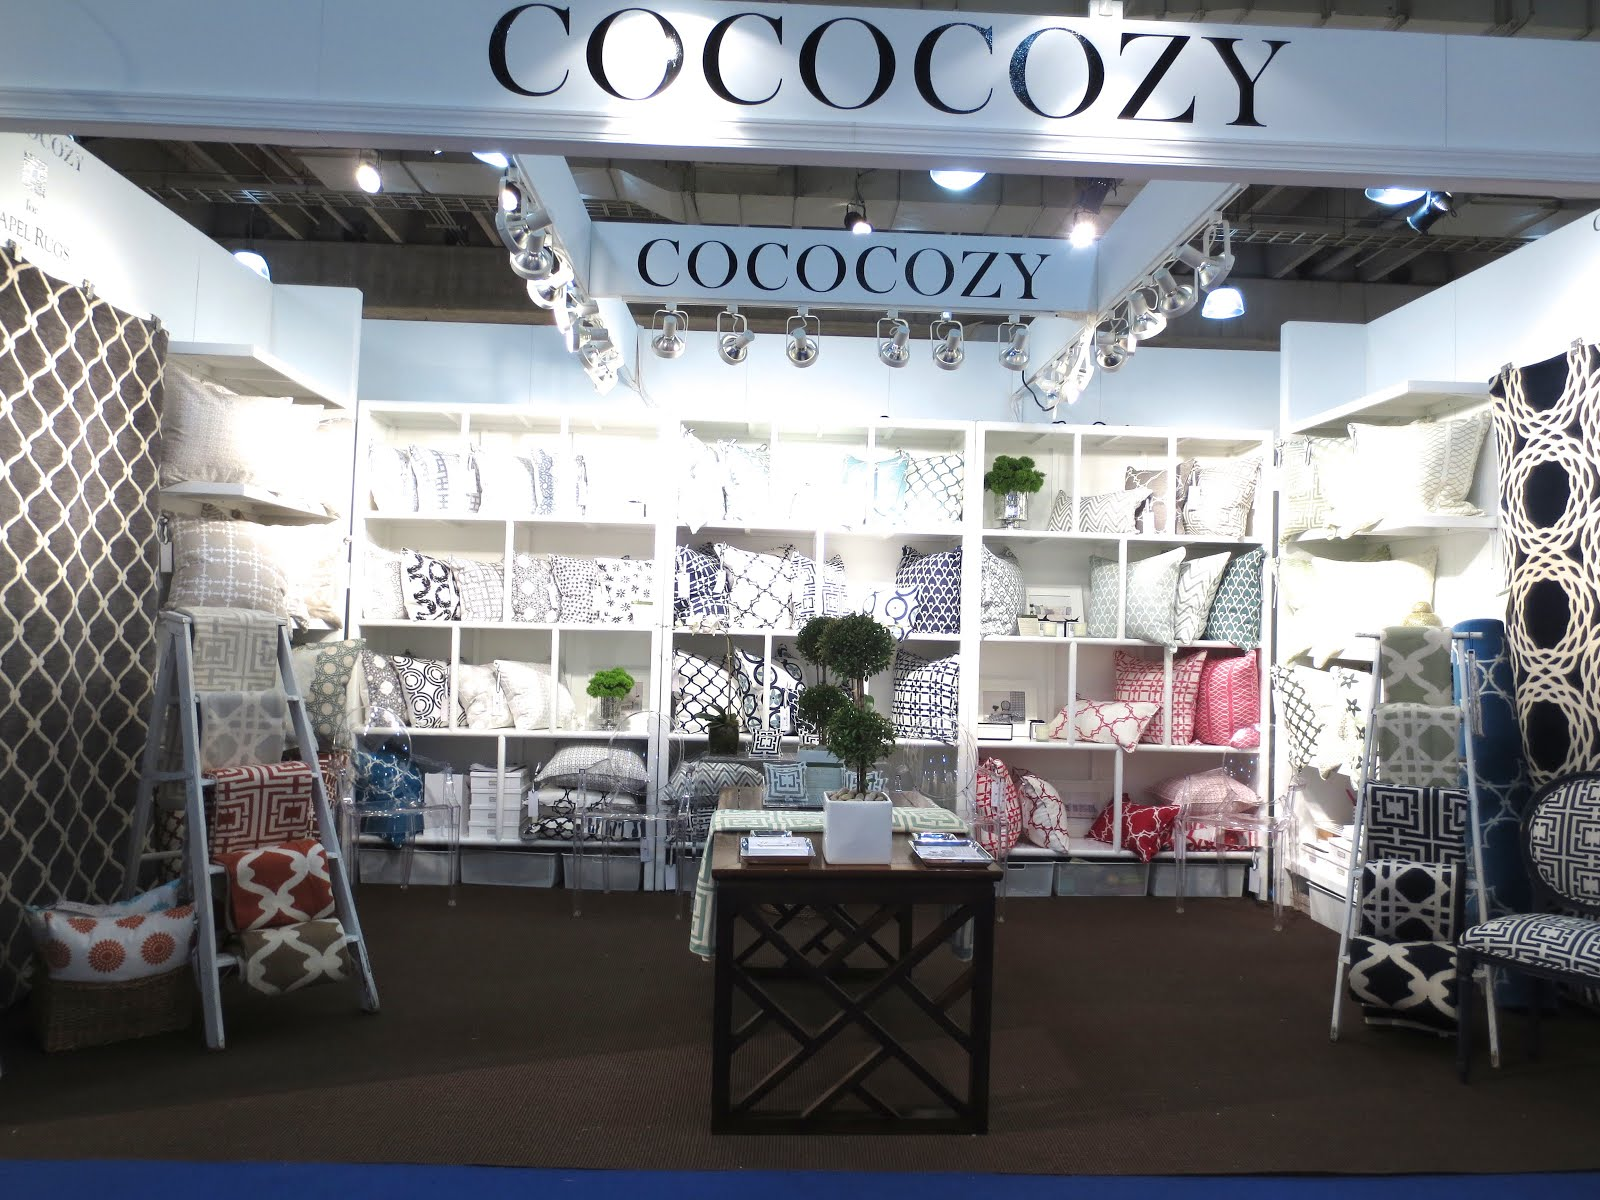 The COCOCOZY Booth At New York International Gift Fair Above